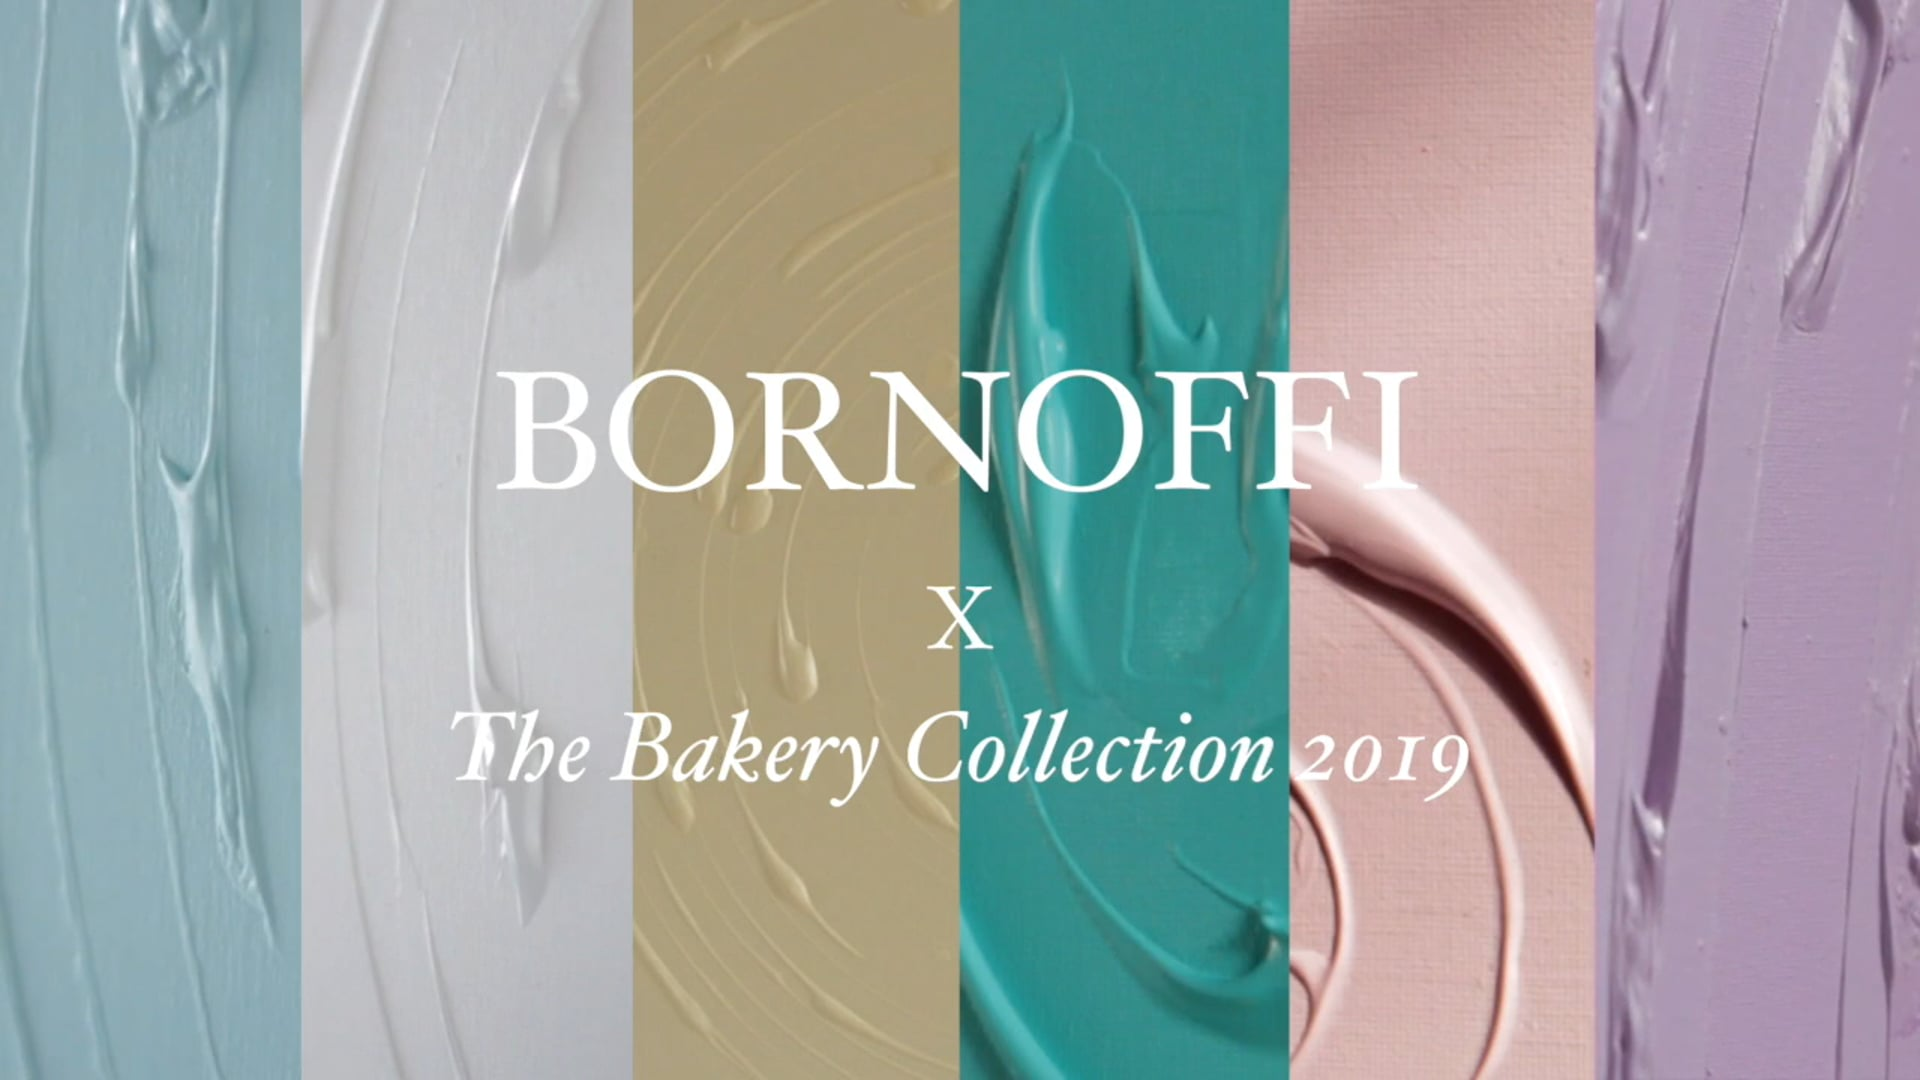 THE BAKERY COLLECTION 2019